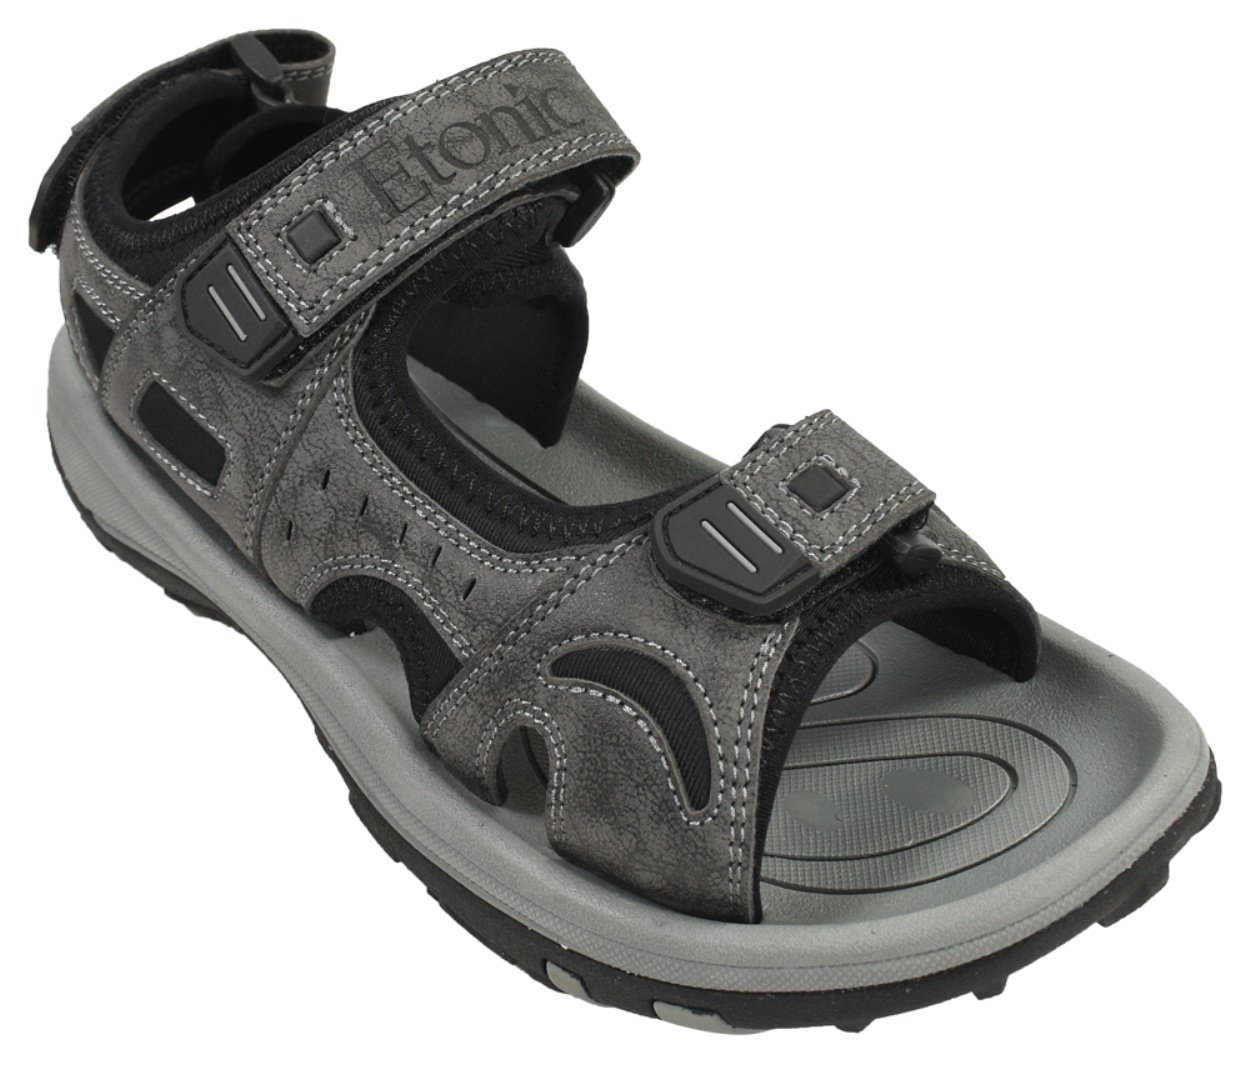 Etonic Spiked Golf Sandal Black 11 M US